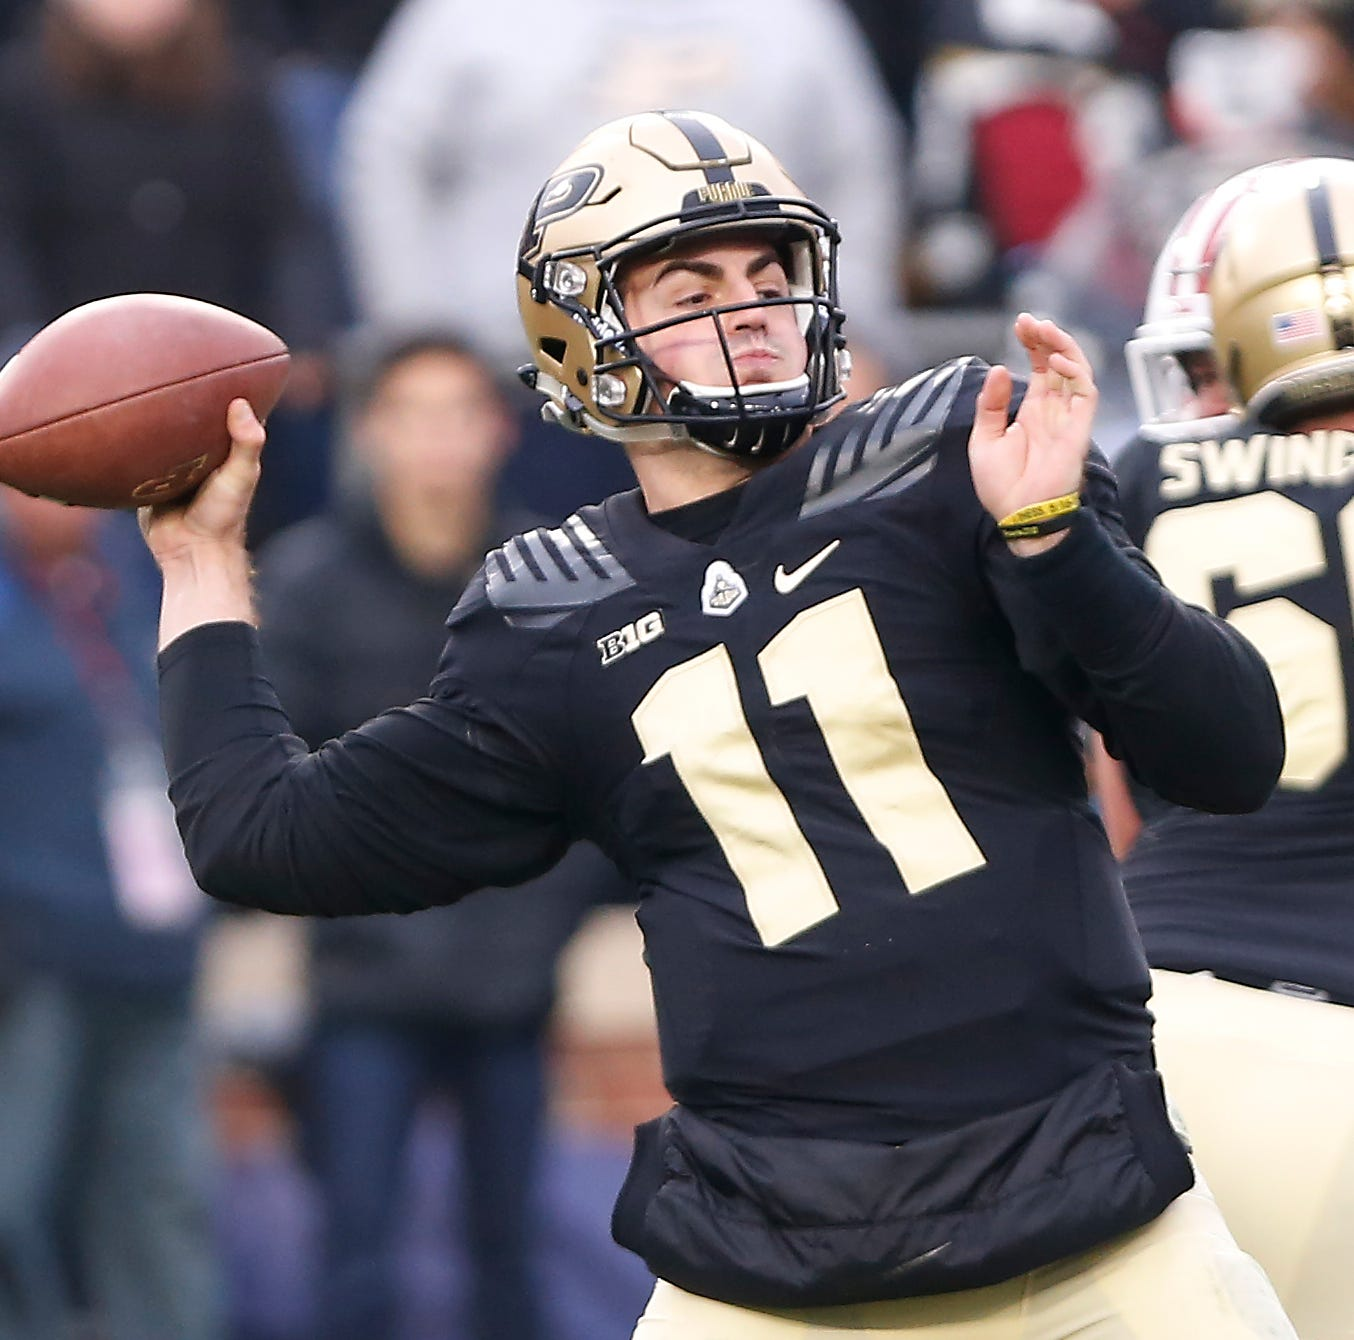 Purdue 27, Wisconsin 20, 4th | Live updates